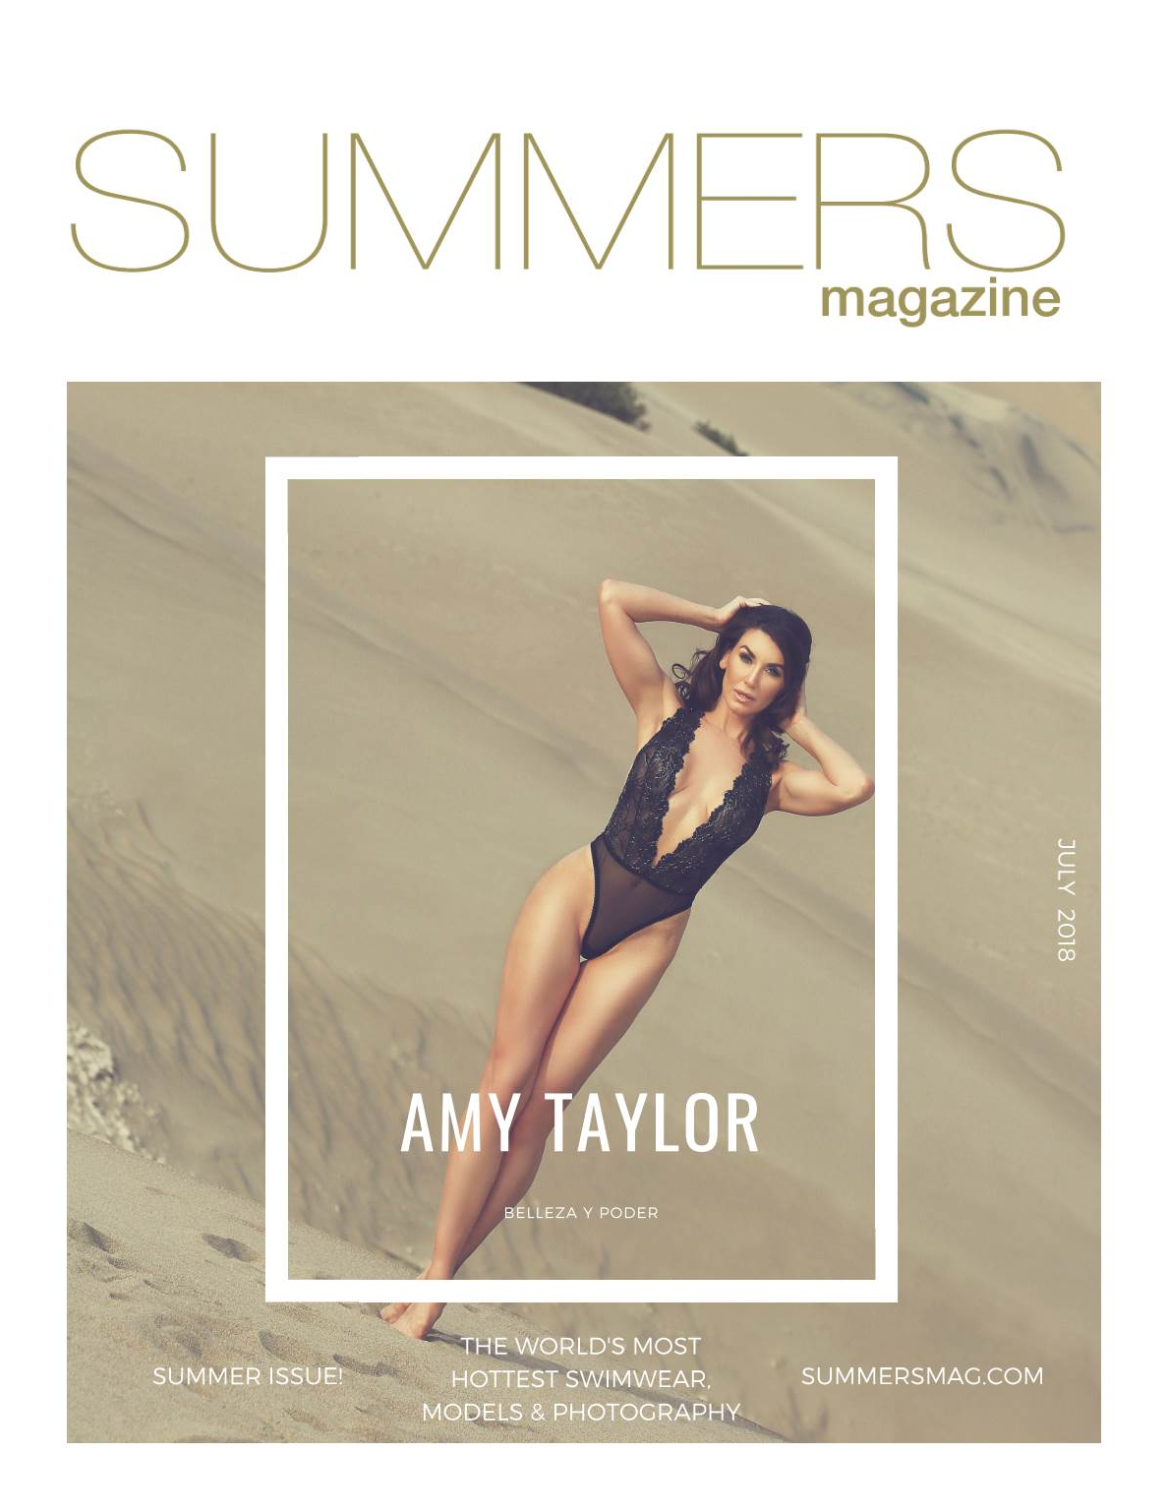 Summers Magazine - July 2018 ft. Amy Taylor